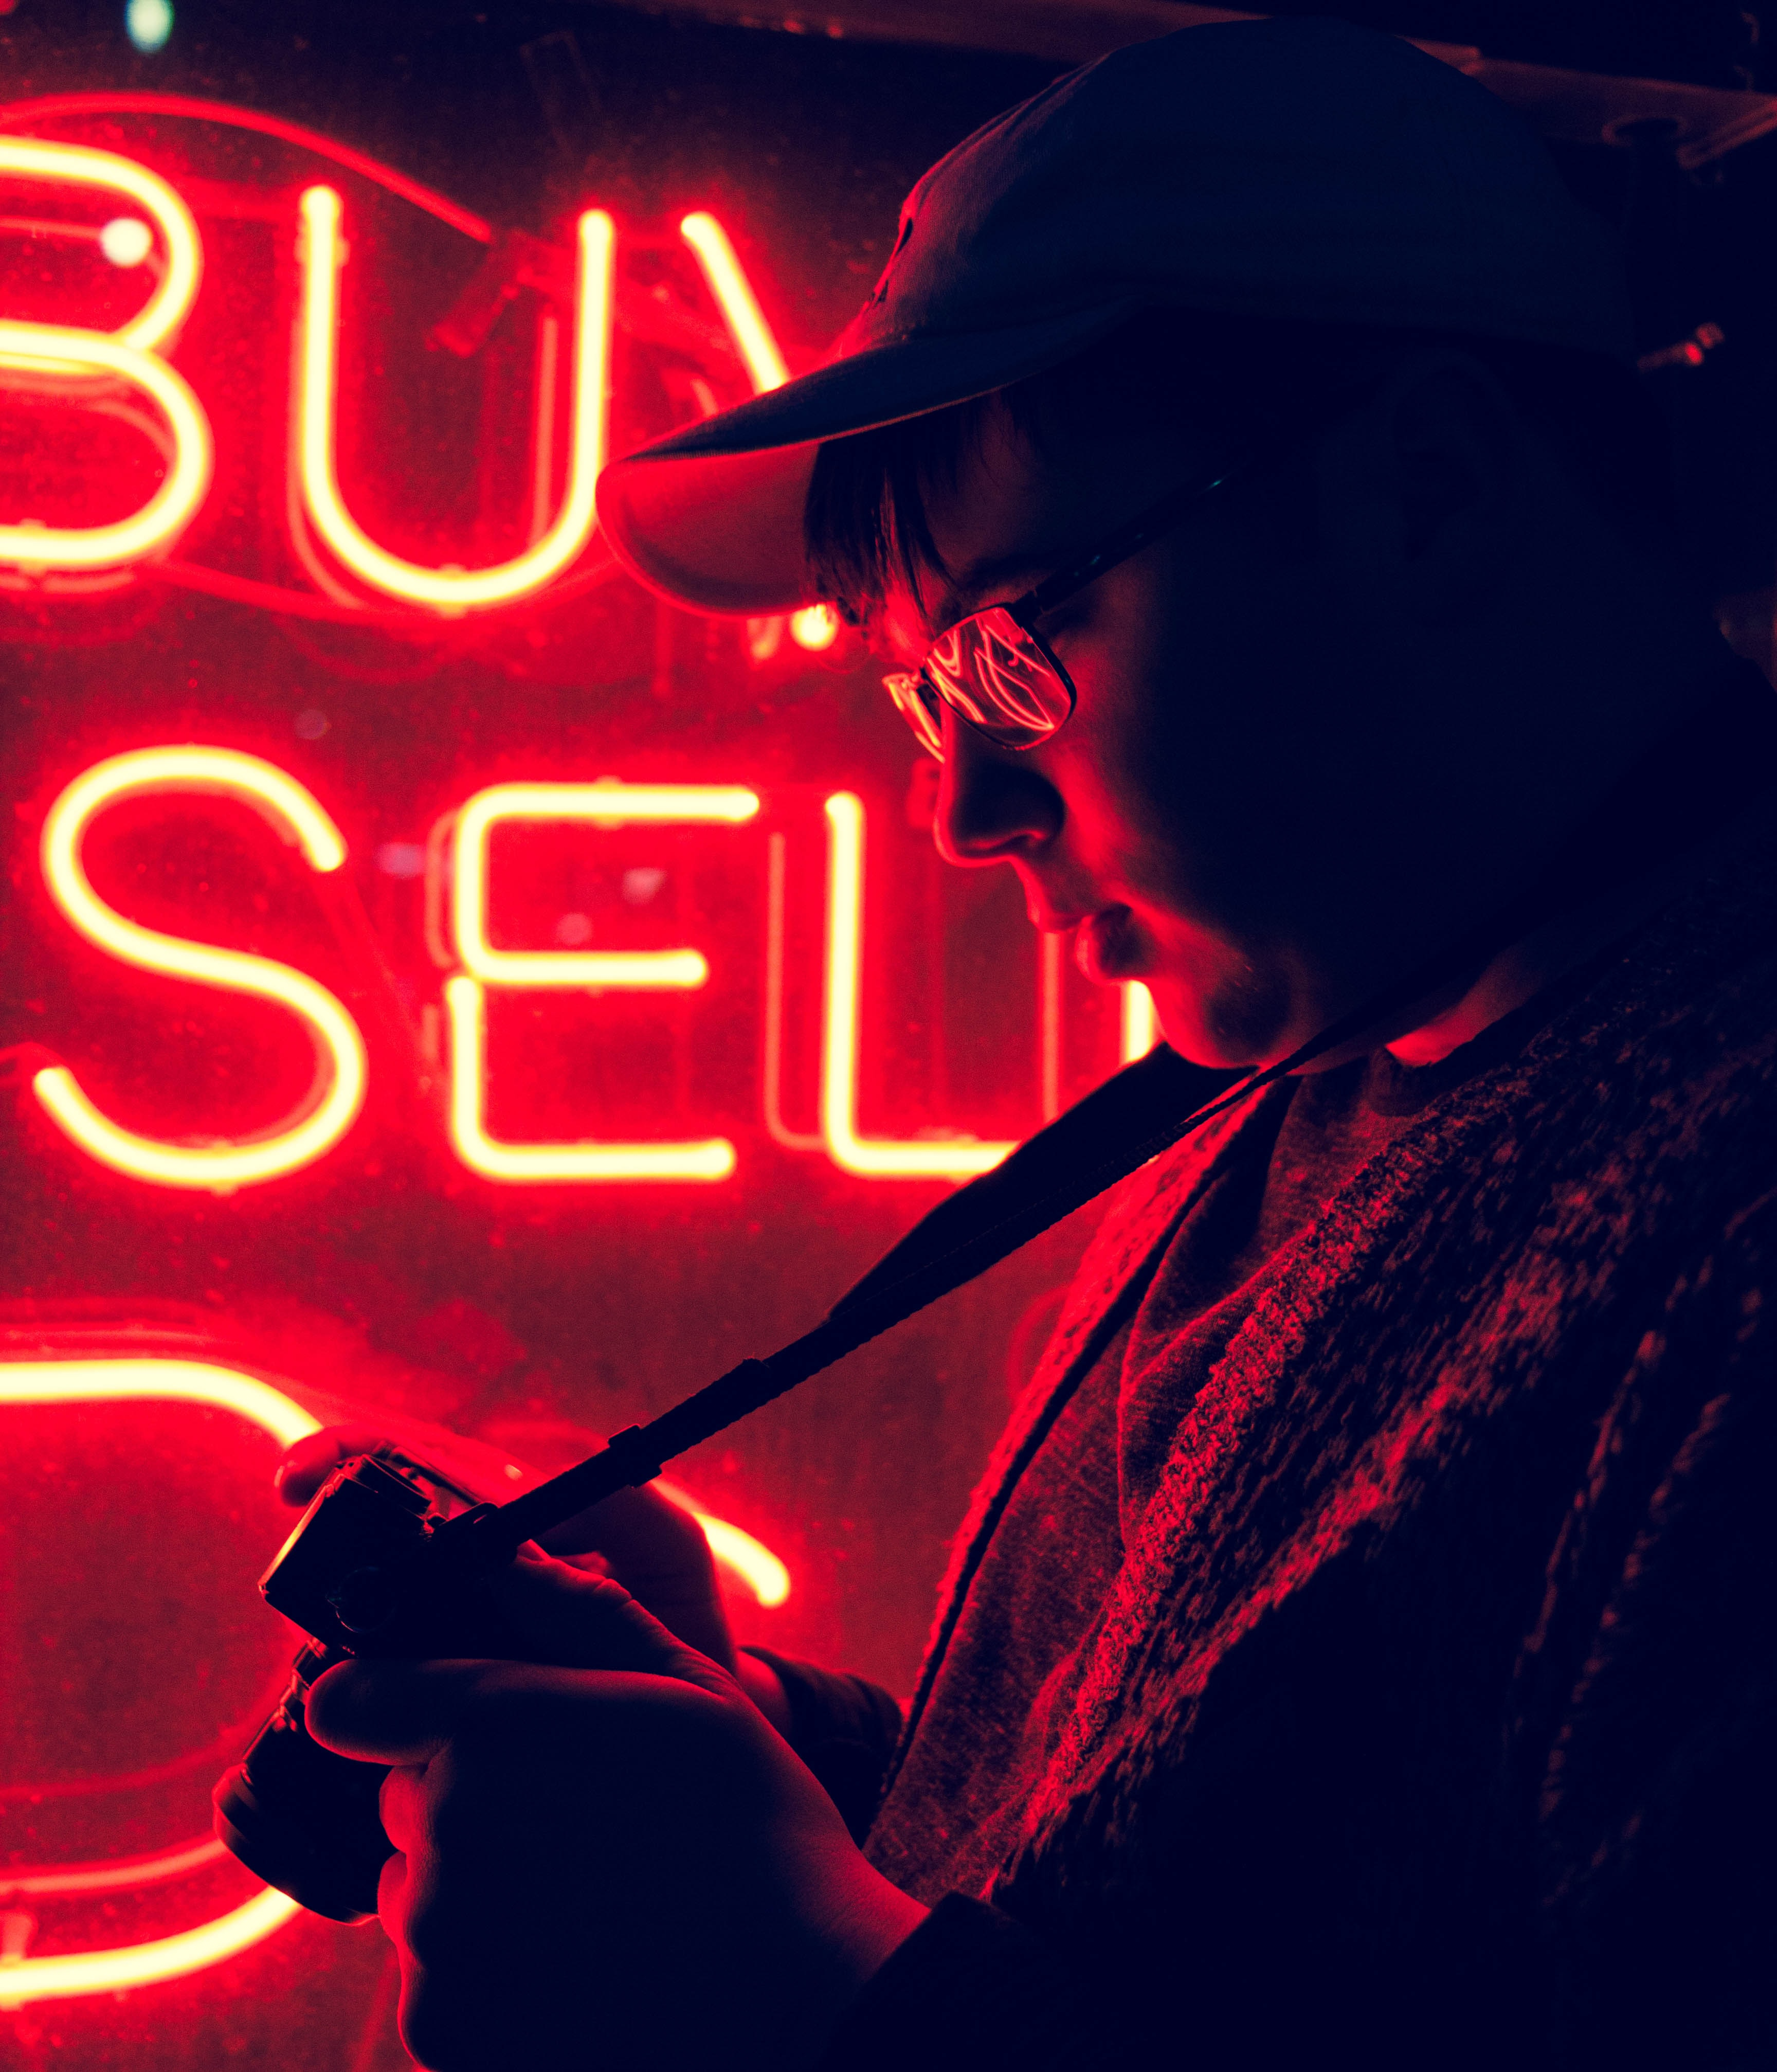 A man in glasses looking at his camera while standing near a red neon